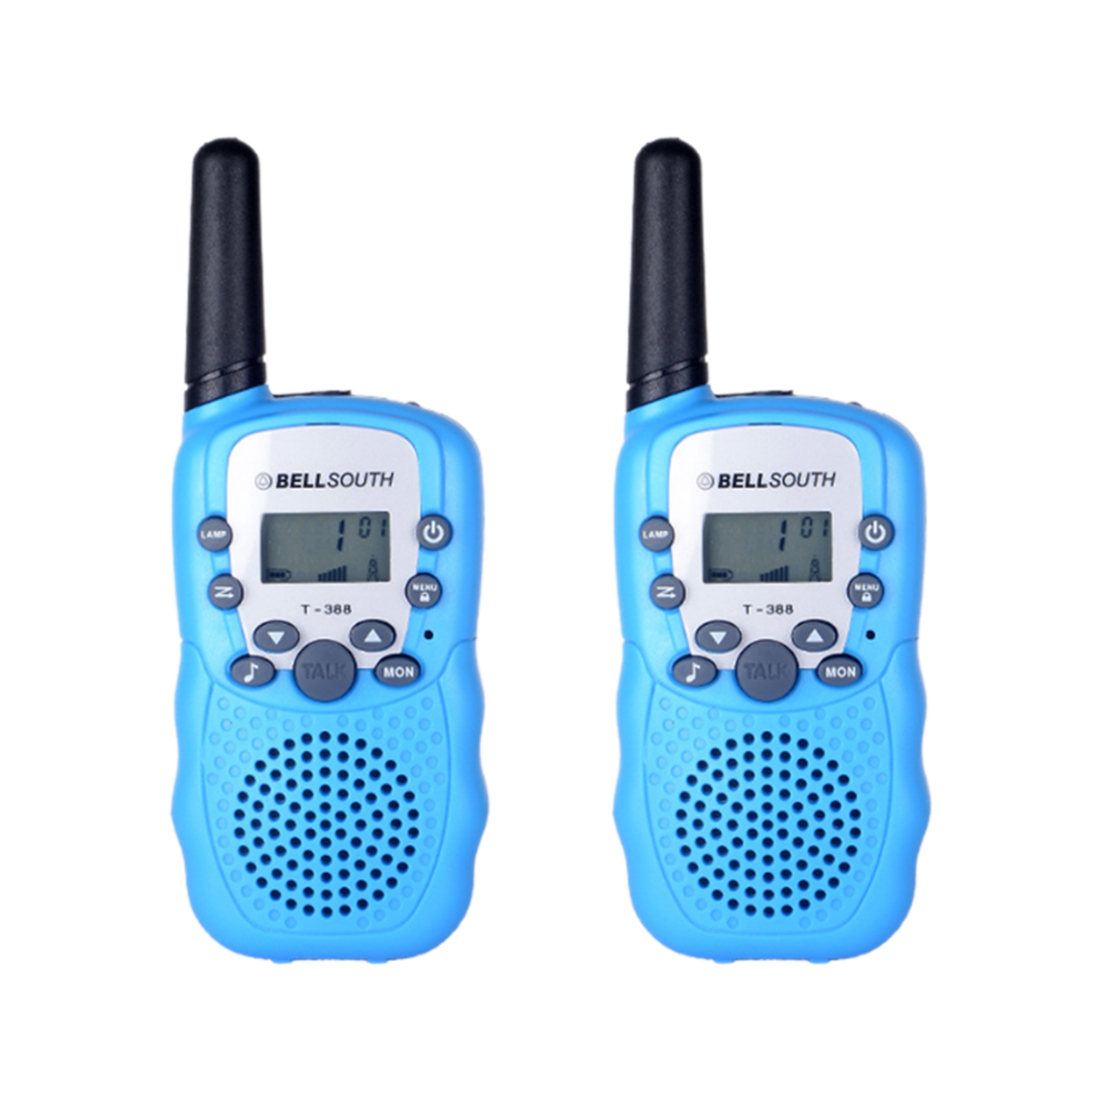 1 Pair Two-Way Walkie Talkie Toys For Children 0.5W Two Way Kids Radio Boys and Girls Brithday Xmas Christmas Gift for kids 2pcs mini walkie talkie uhf interphone transceiver for kids use two way portable radio handled intercom free shipping